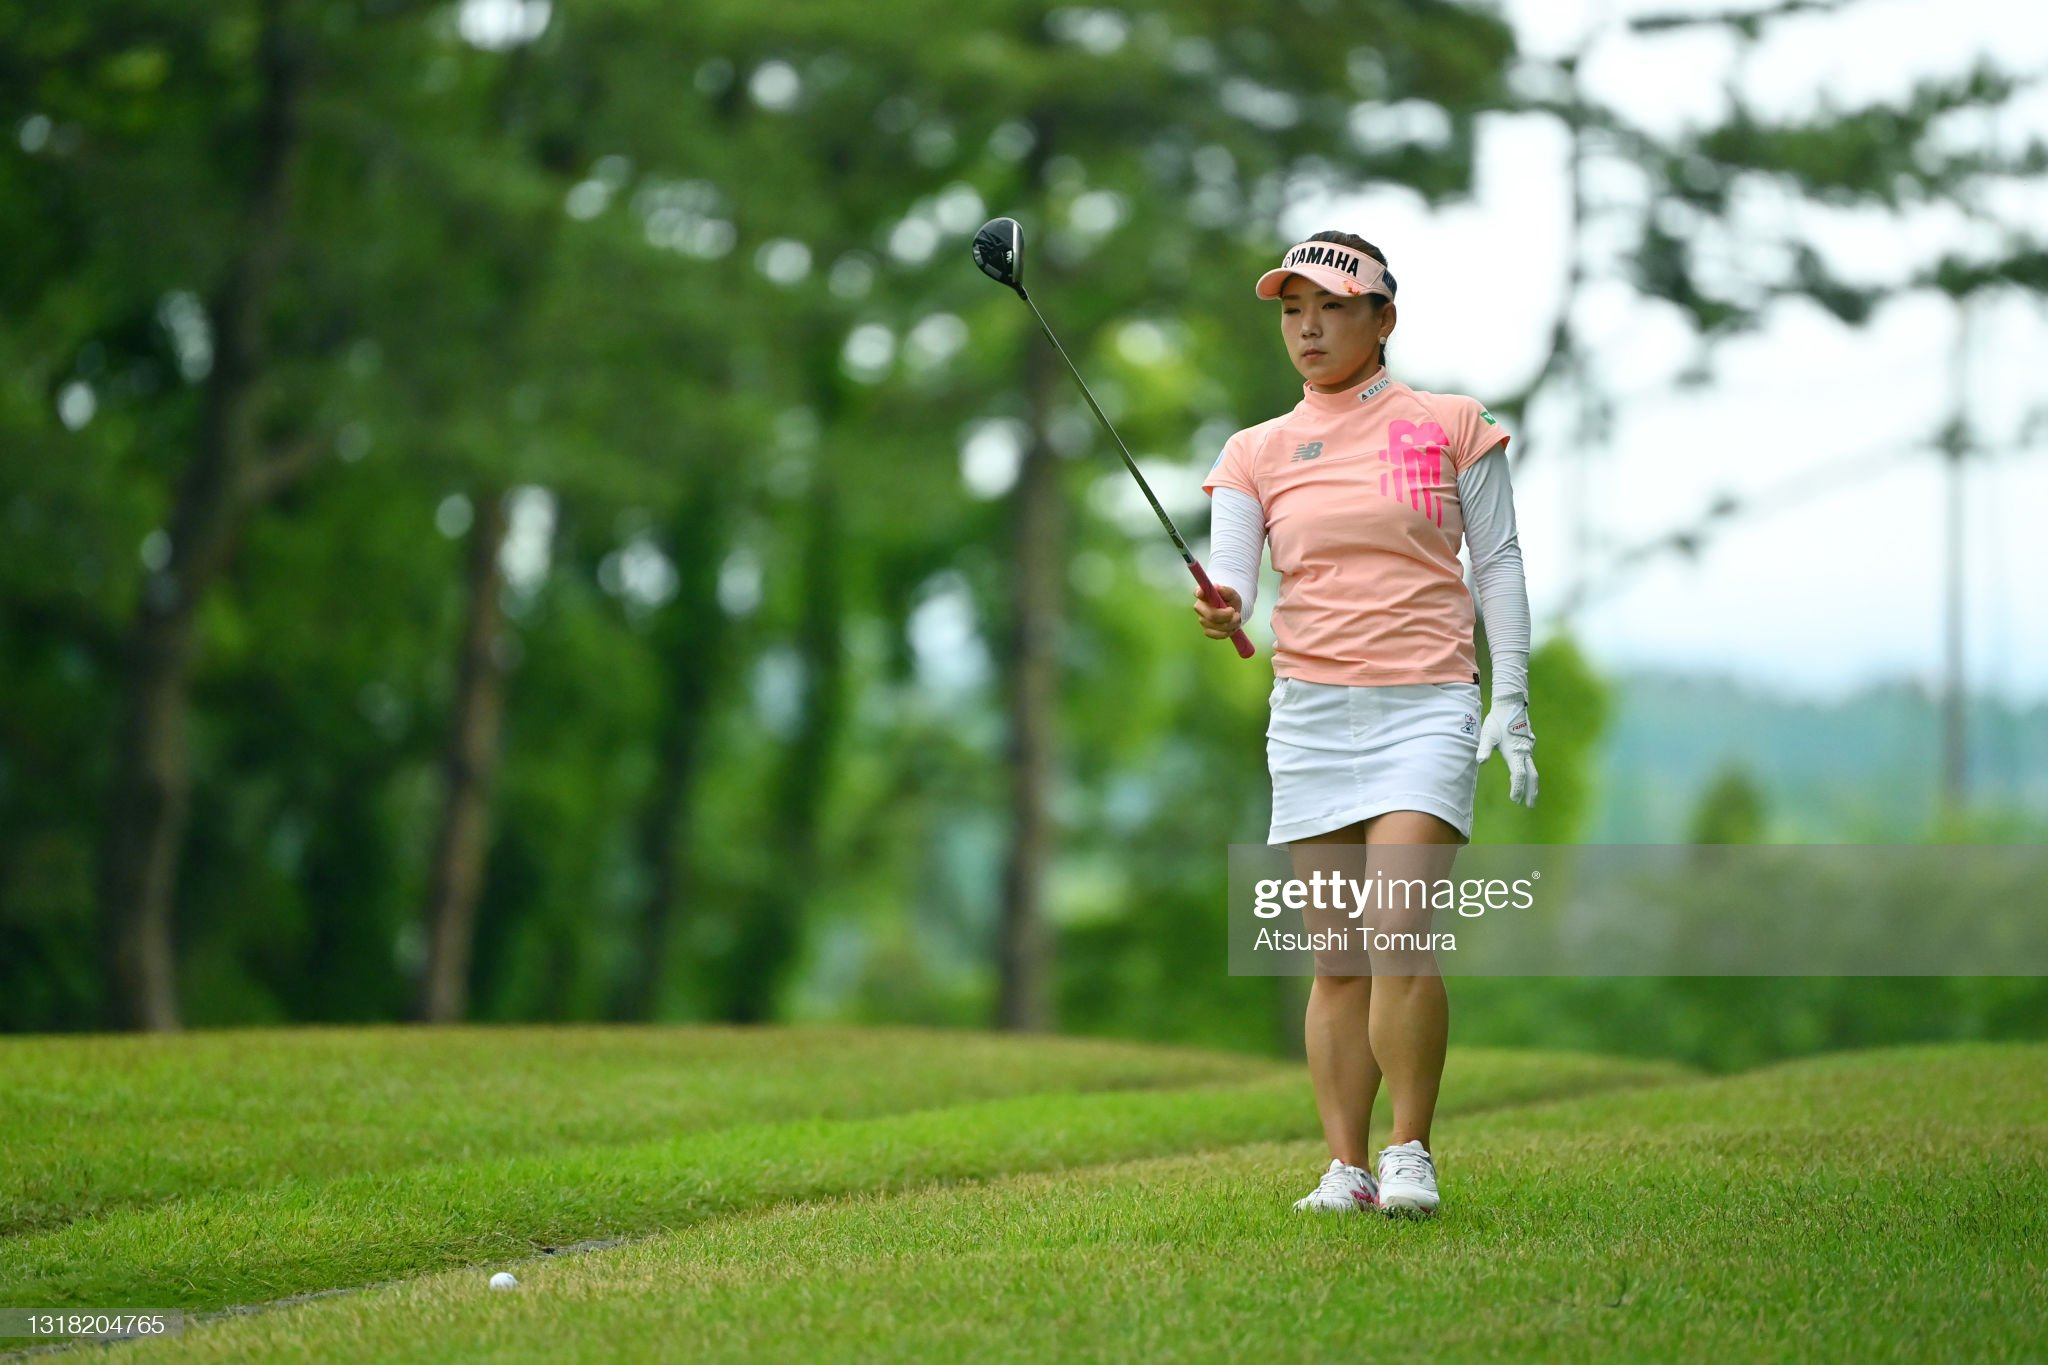 https://media.gettyimages.com/photos/chie-arimura-of-japan-is-seen-before-her-second-shot-on-the-1st-hole-picture-id1318204765?s=2048x2048